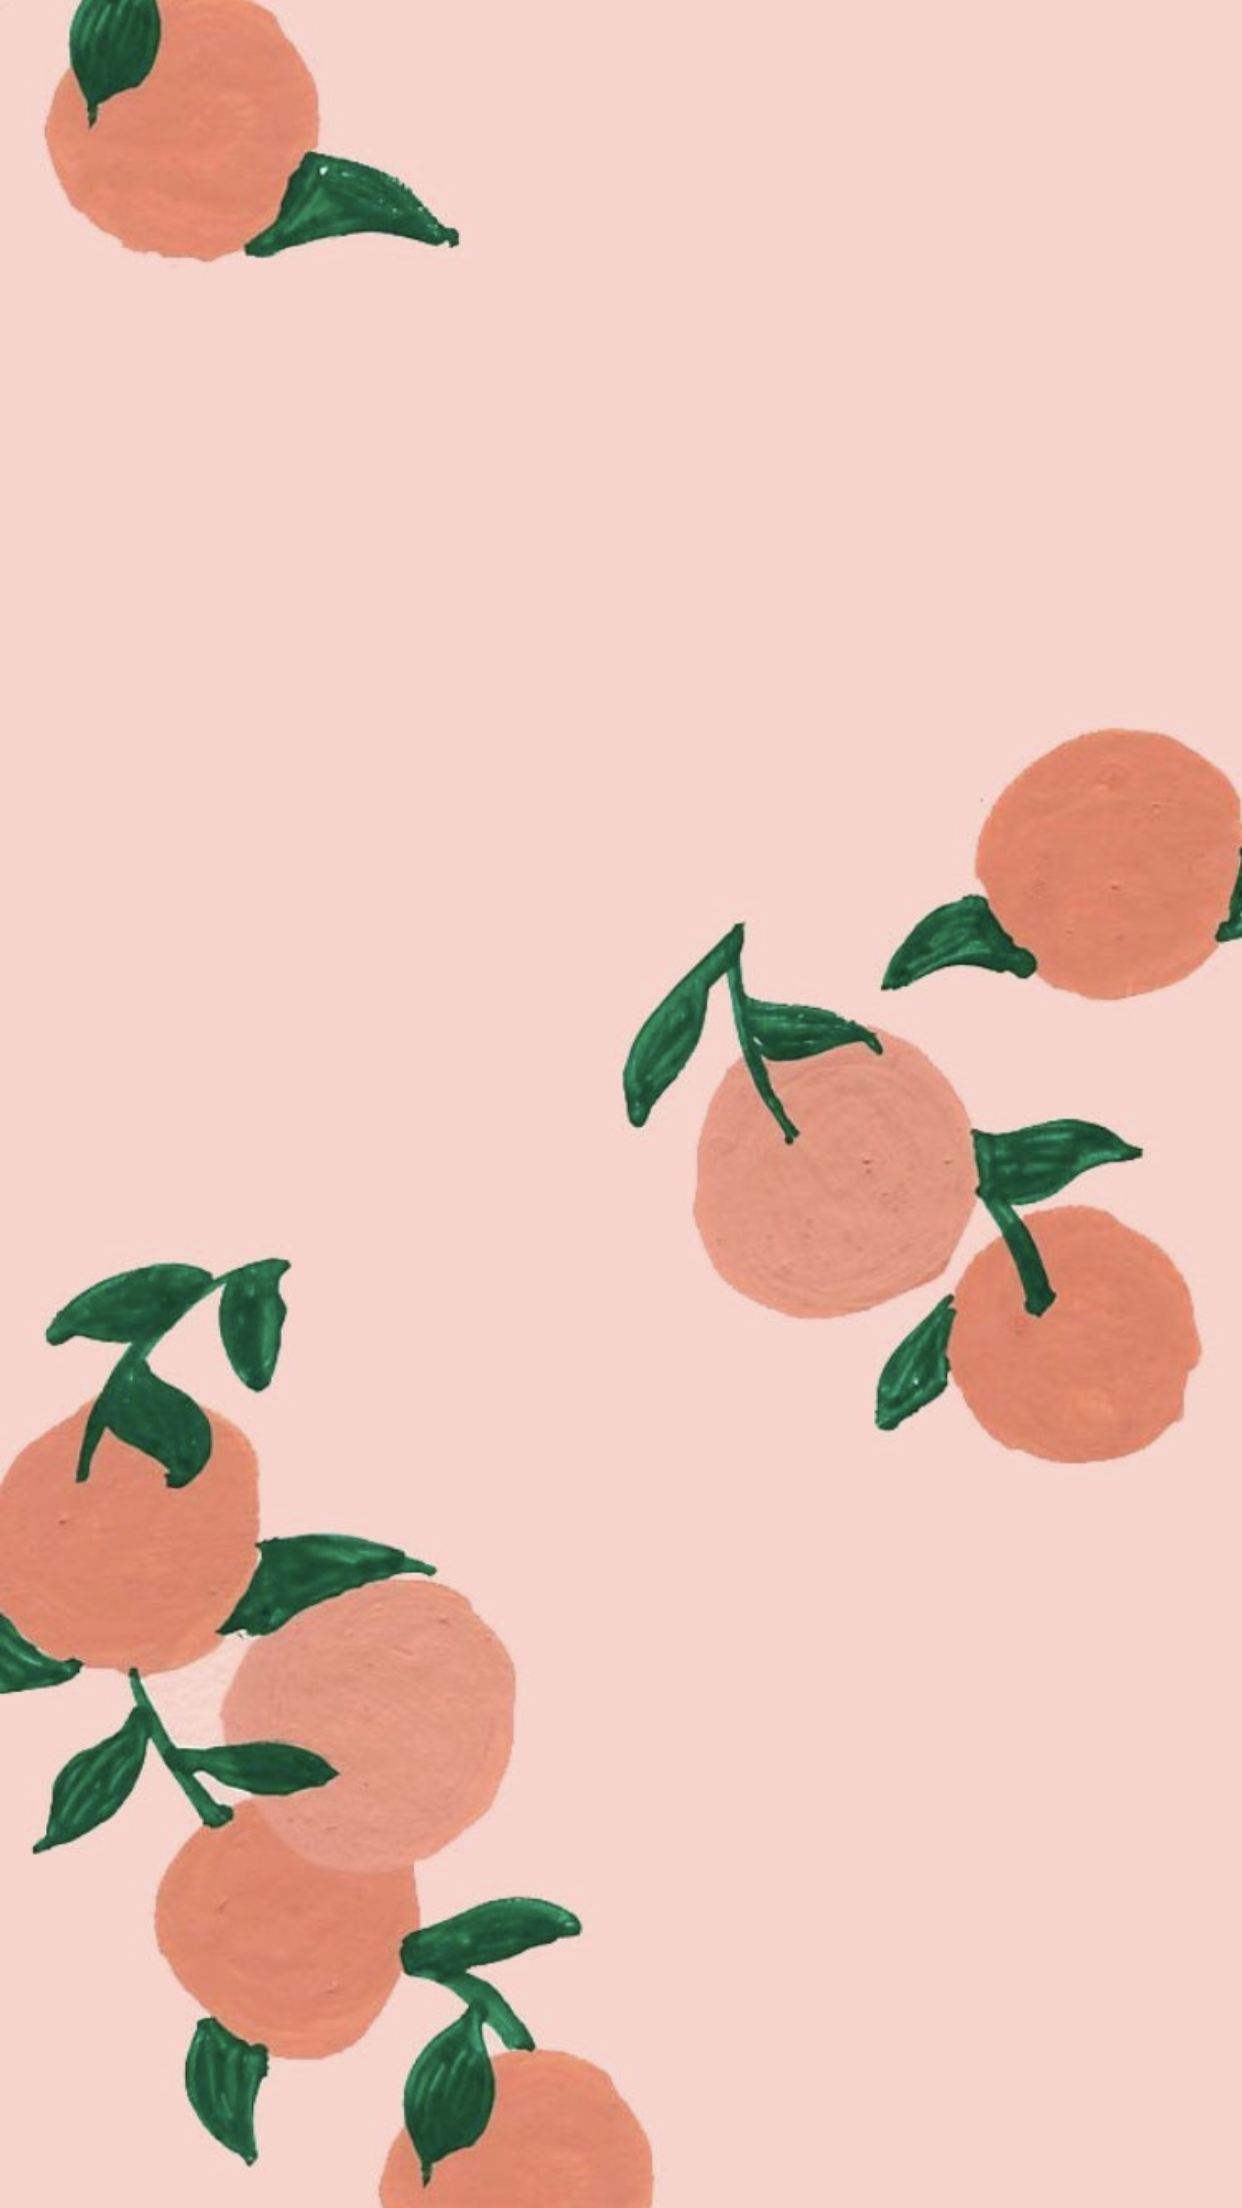 Peach Aesthetic Iphone Wallpaper